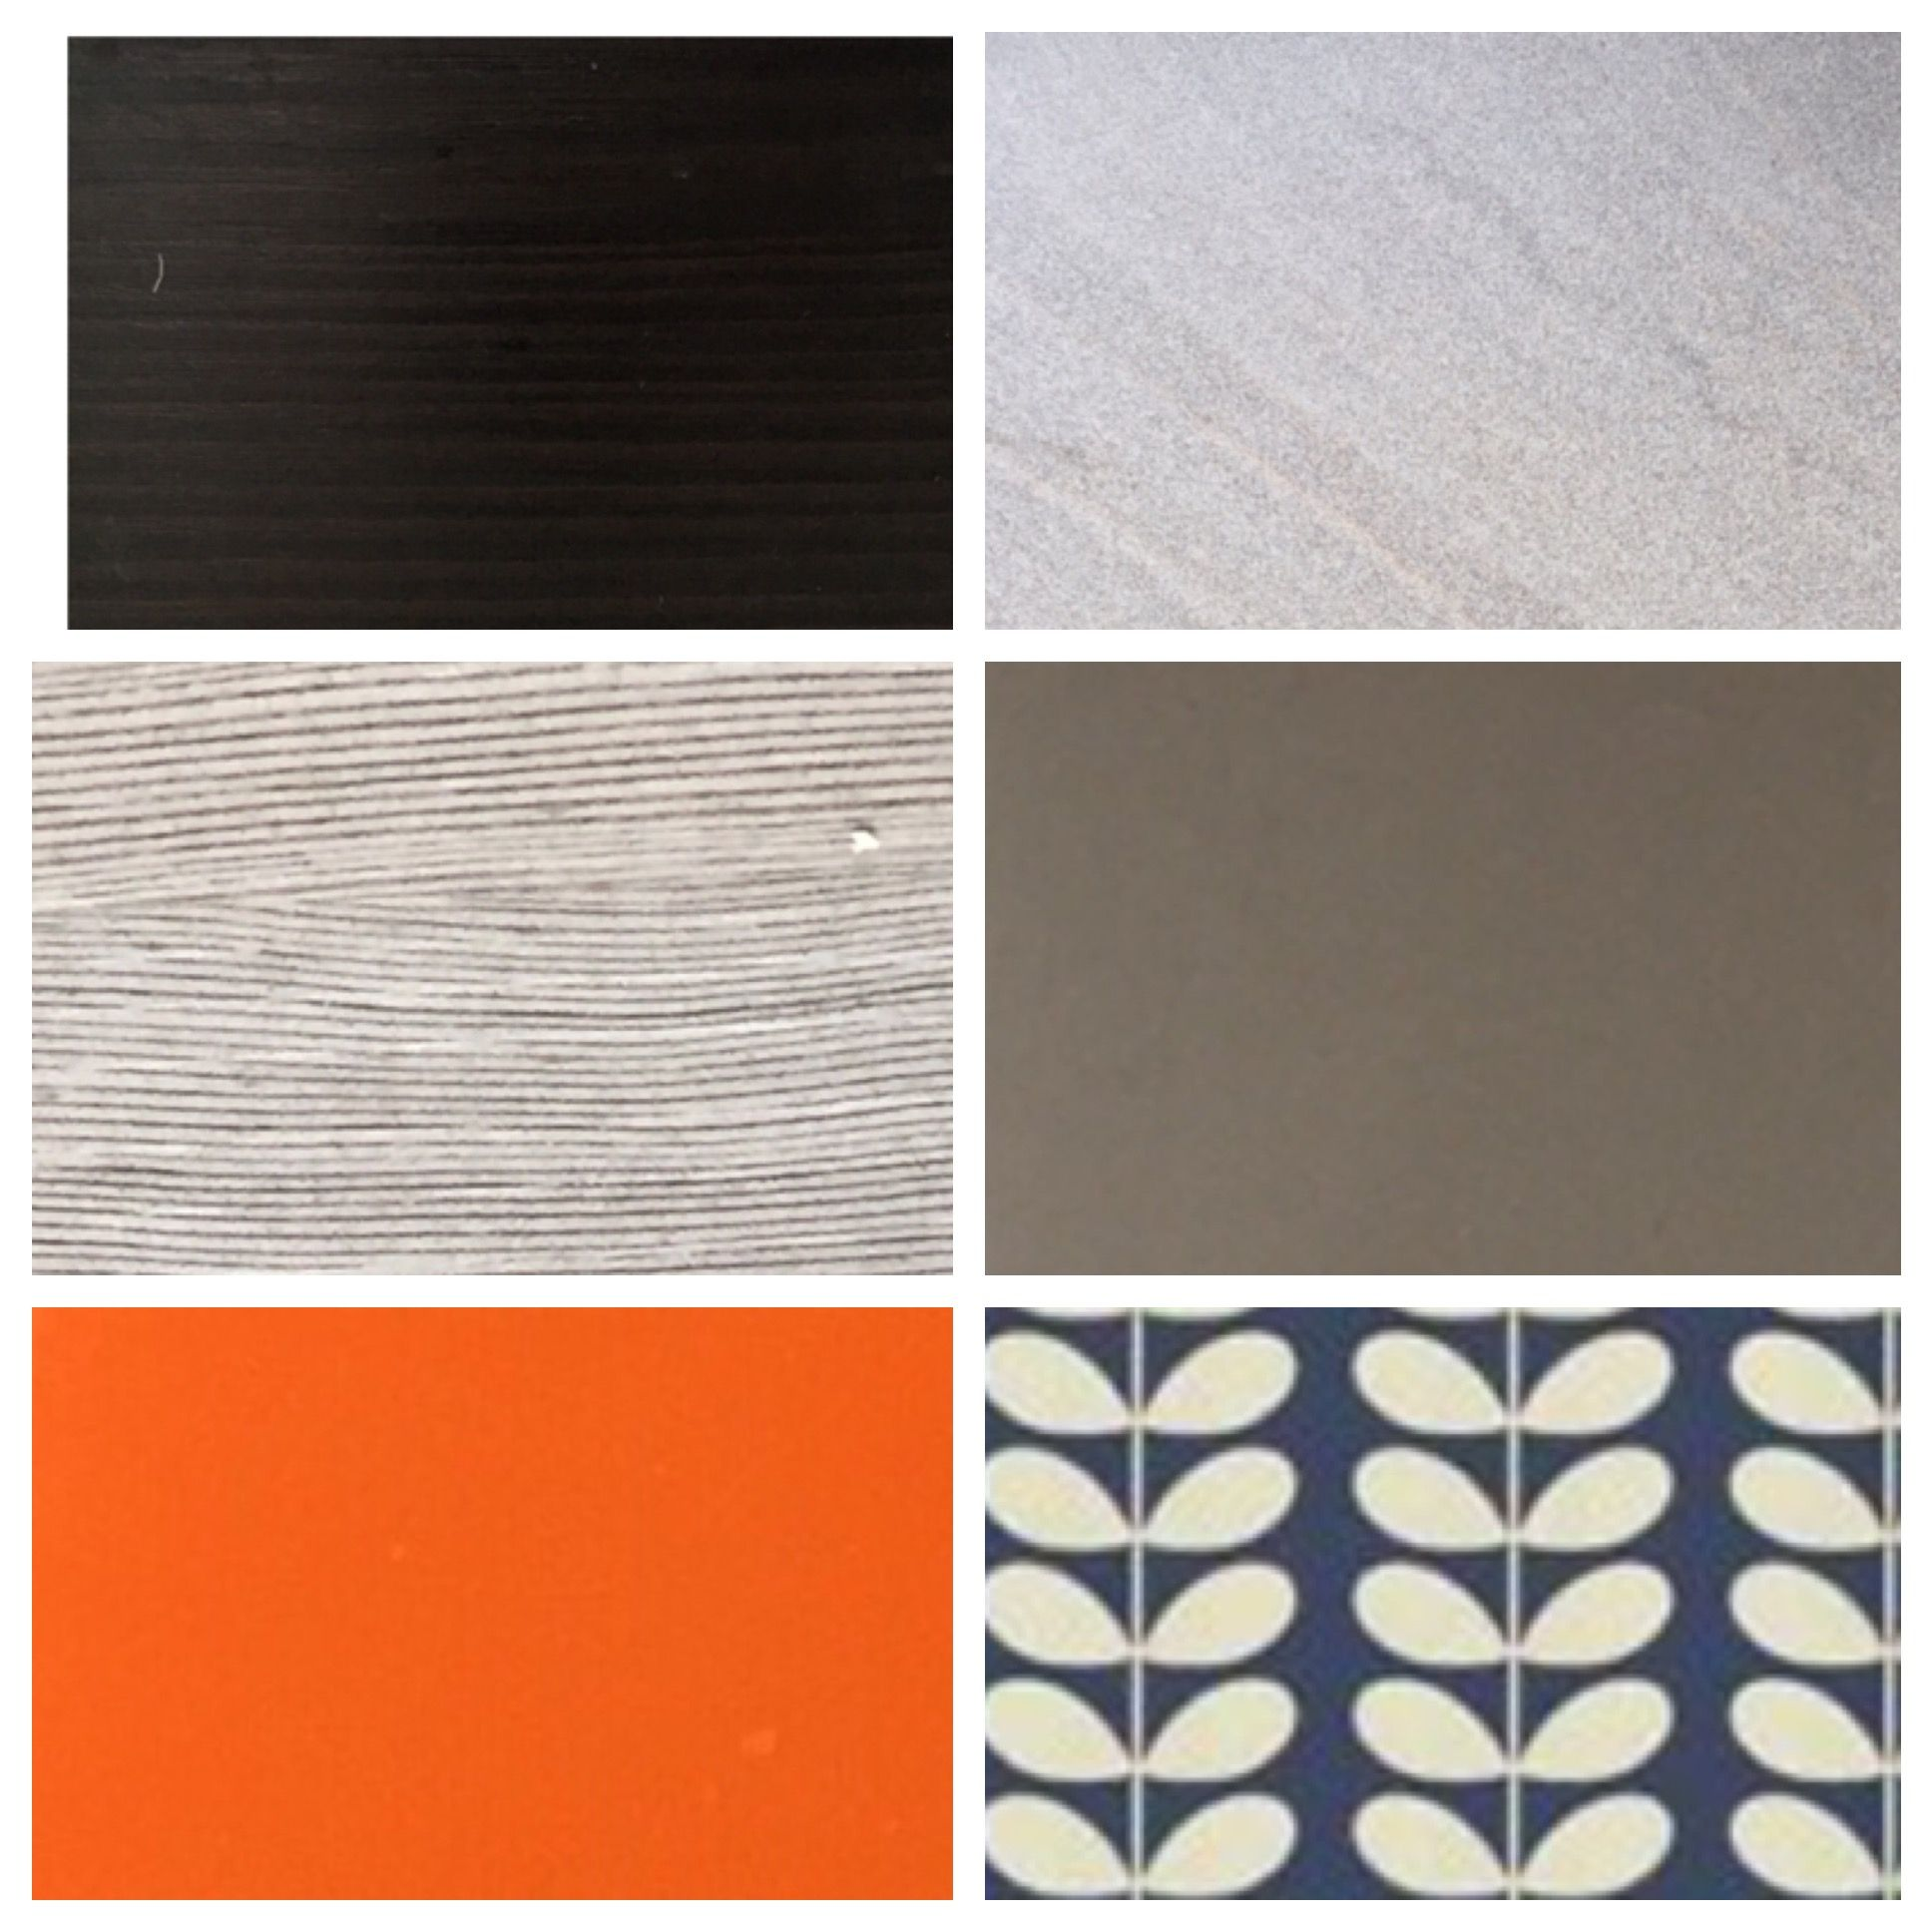 dulux kitchen tile paint colours. dulux moroccan flame orange paint. dark wood kitchen units / walls tile paint colours